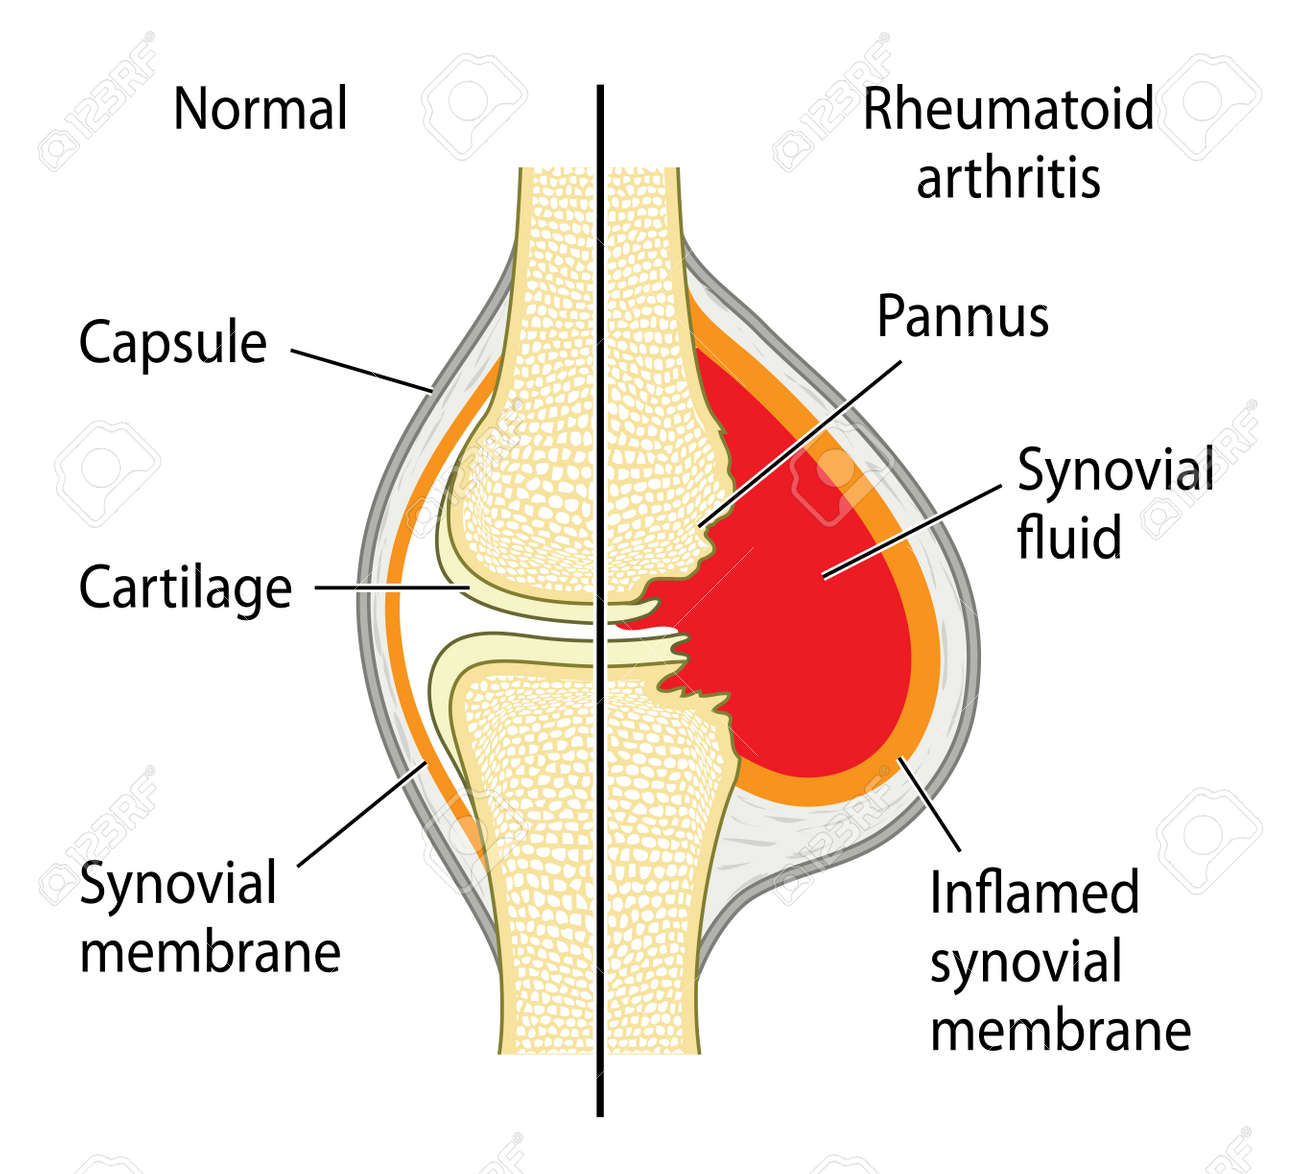 A Normal Knee Joint And The Changes Due To Rheumatoid Arthritis ...